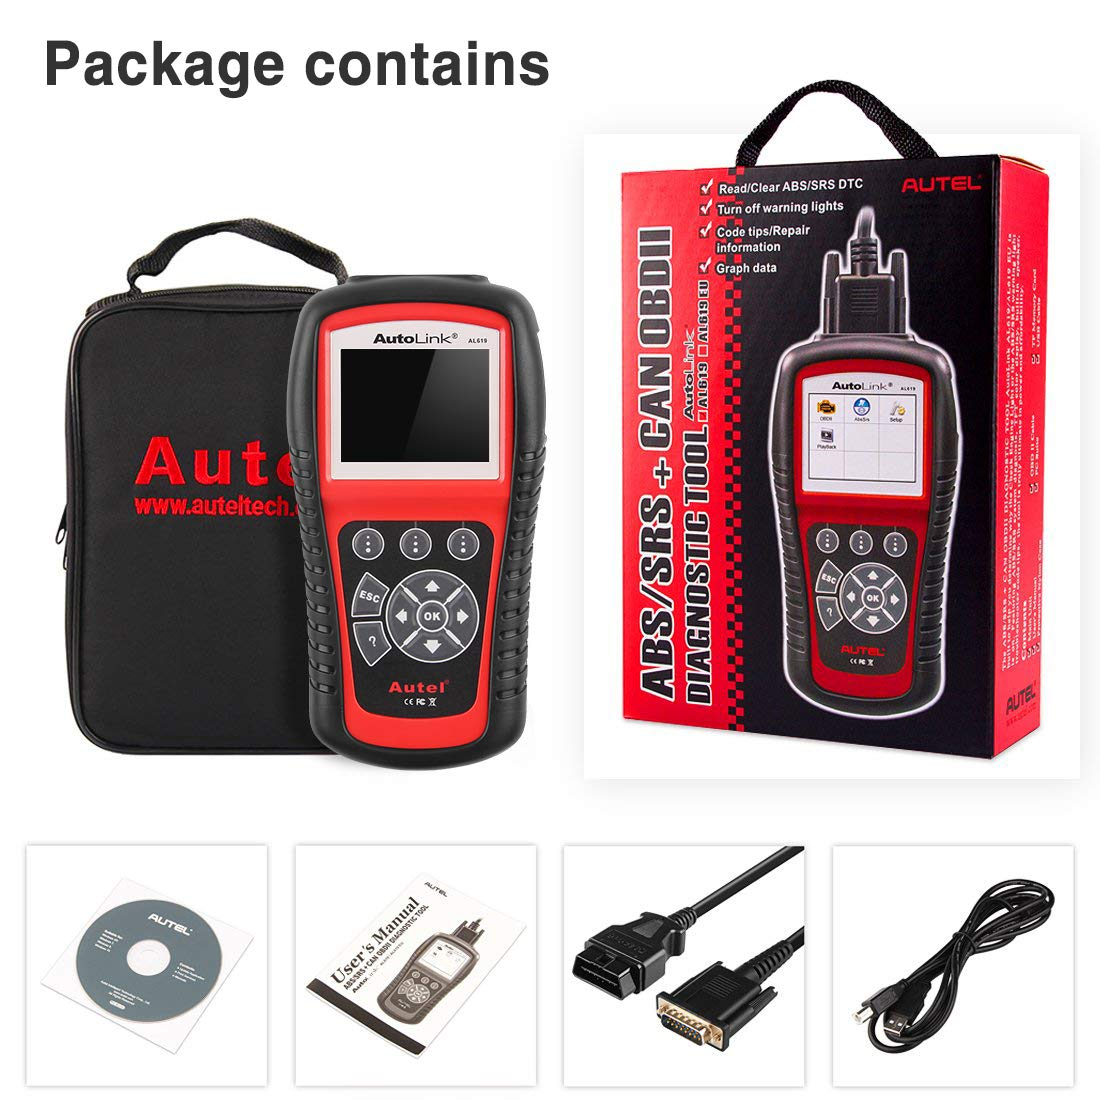 Autel AutoLink AL619 OBD2 Scanner ABS/SRS Diagnostic Scan Tool,Turns Off Engine Light (MIL) and ABS/SRS Warning Lights,Same Function as The ML619 Code Reader by Autel (Image #8)